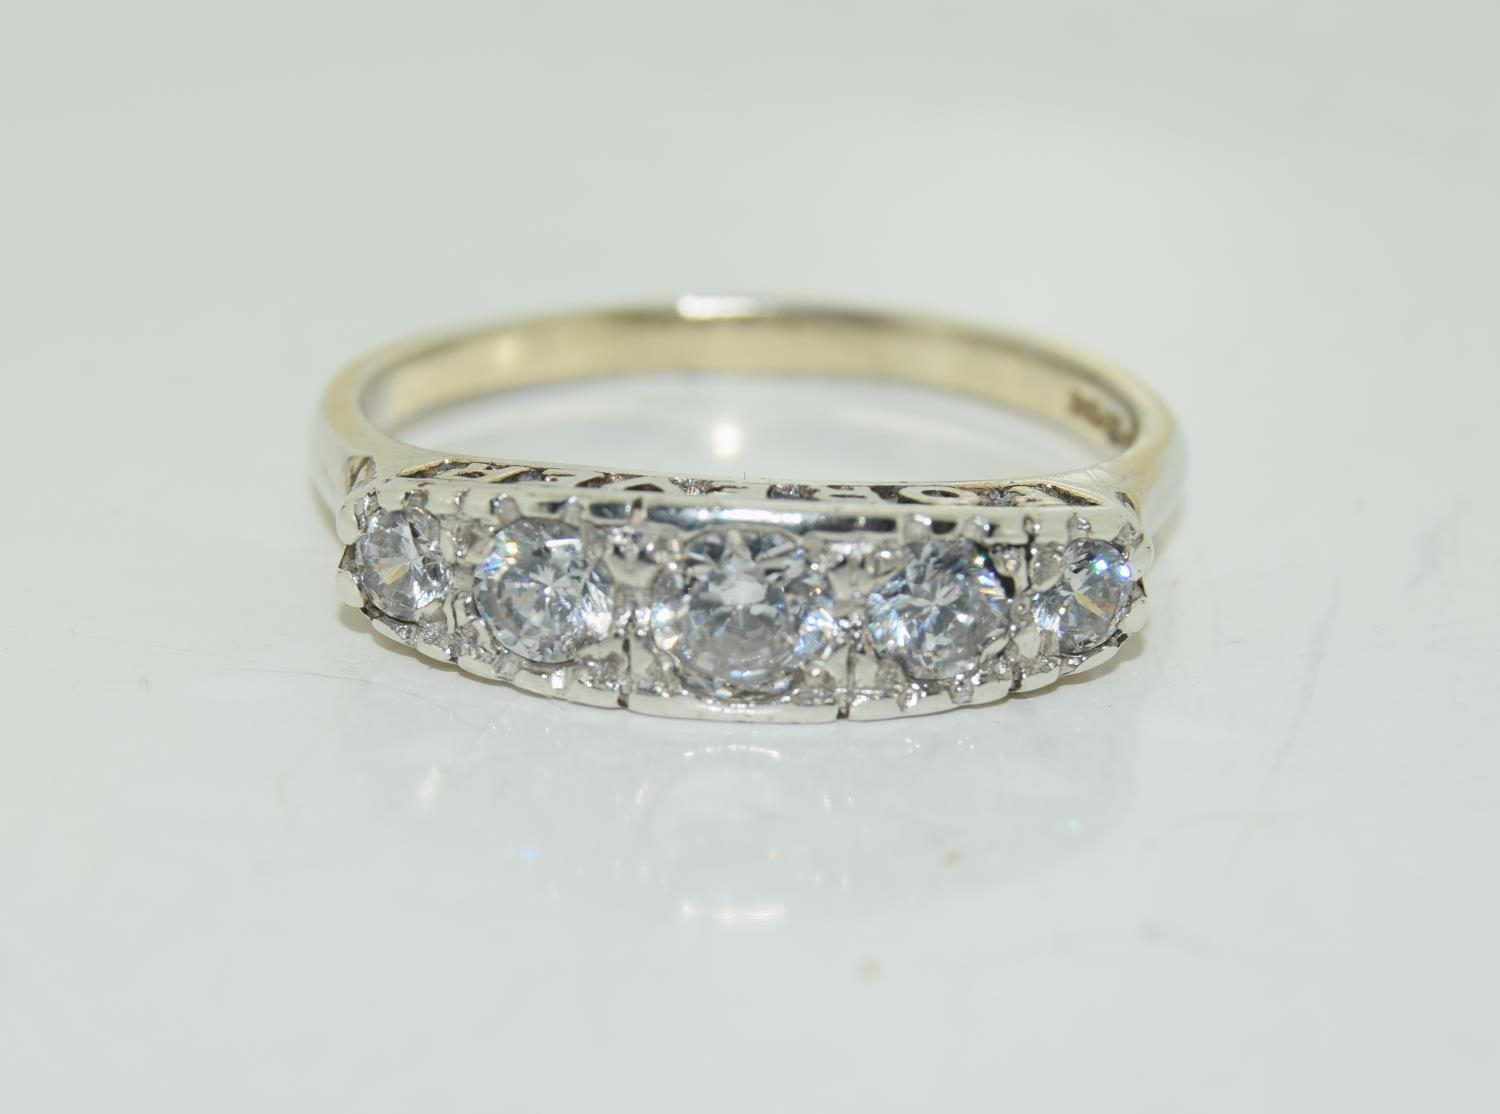 Large 'Always Forever' CZ 925 silver ring, Size W.